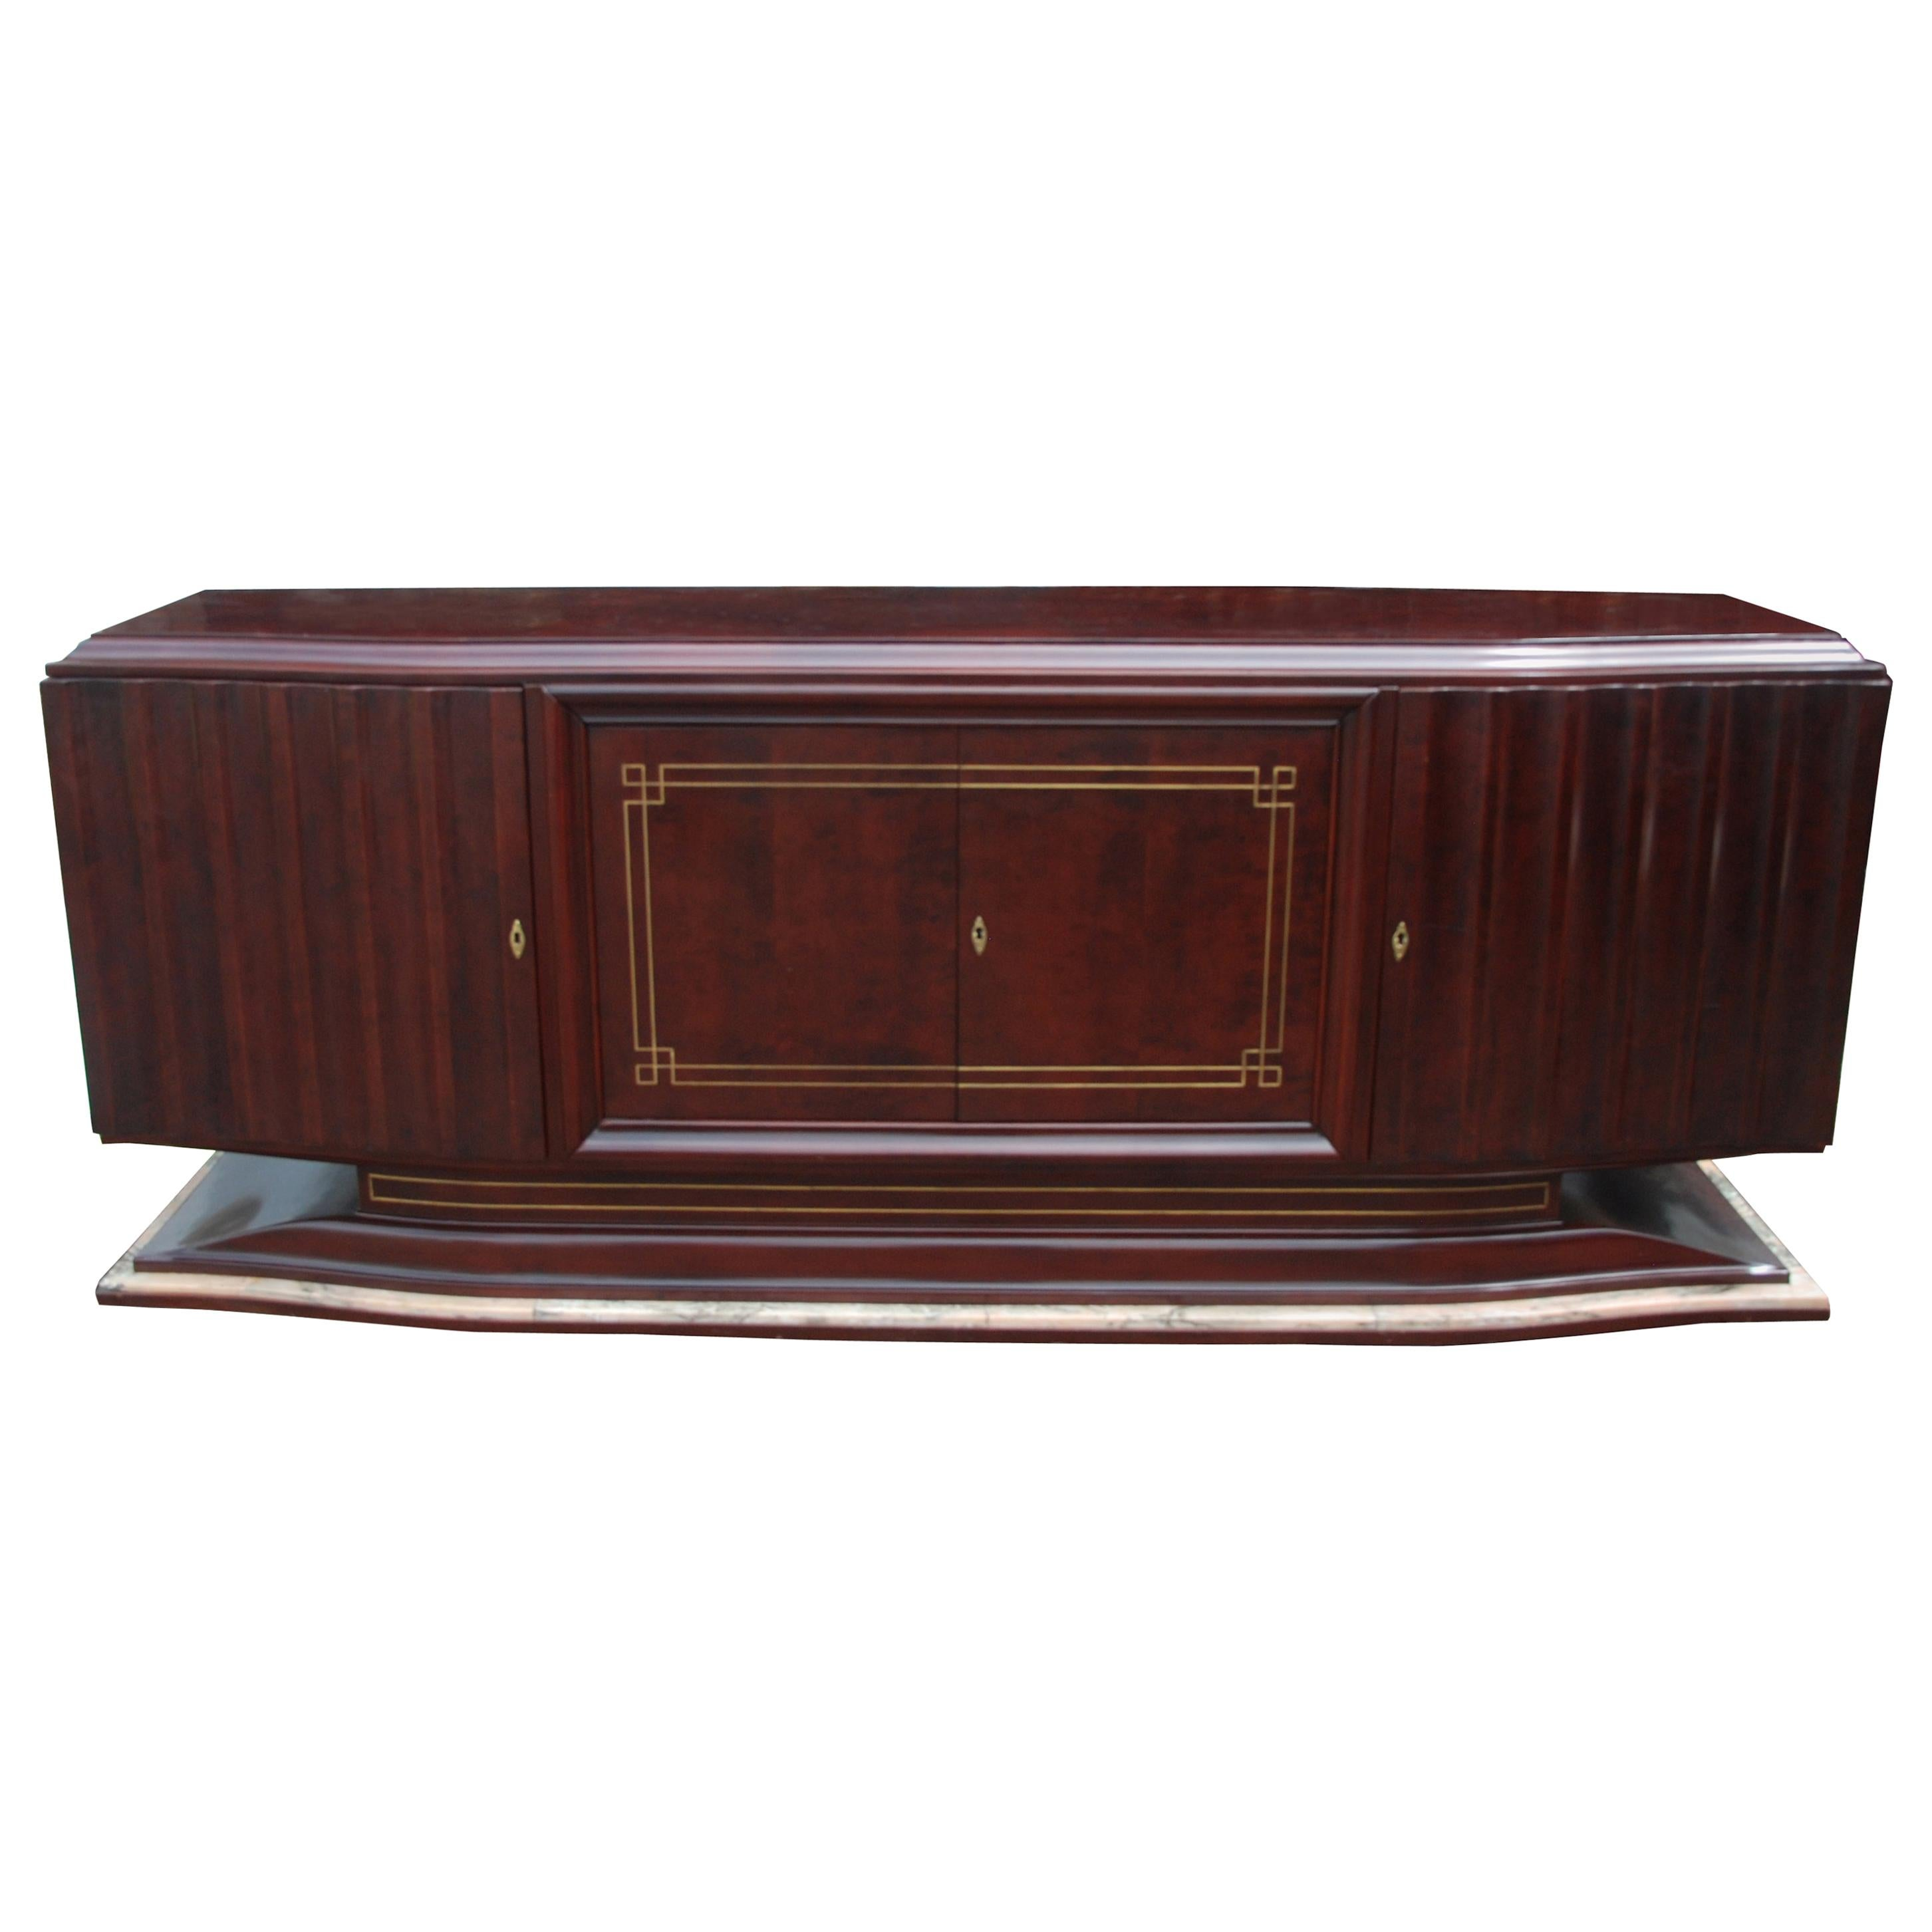 1940s French Deco Sideboard